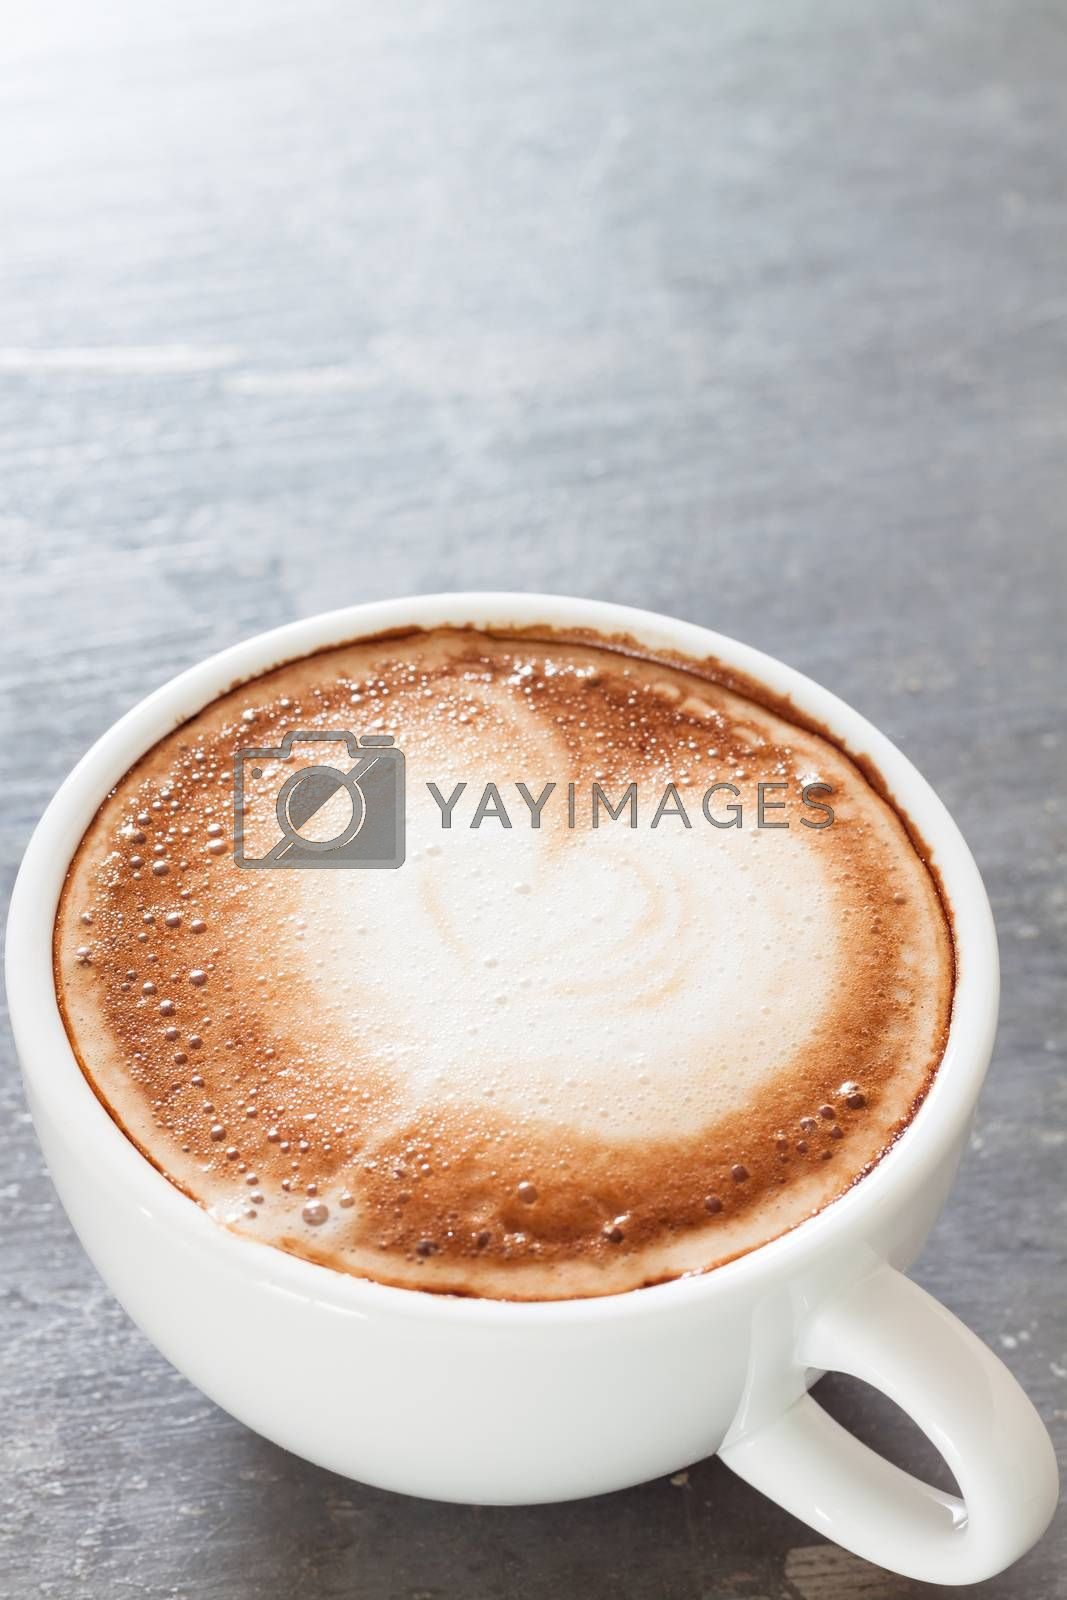 Royalty free image of Coffee cup on grey background by punsayaporn